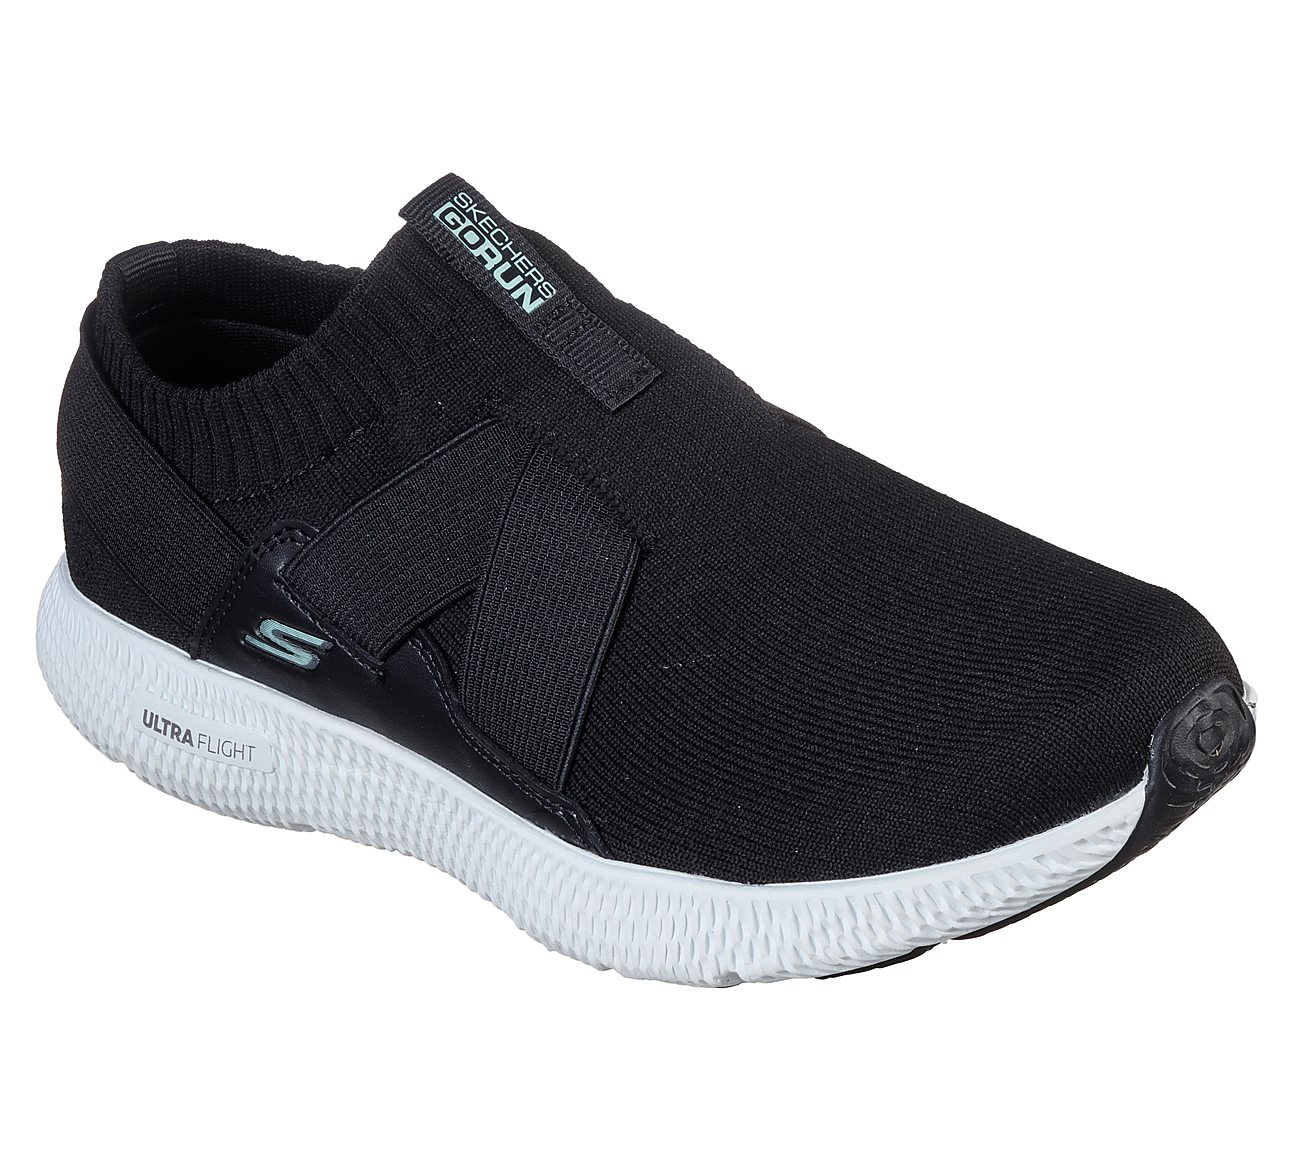 Skechers GOrun Horizon - Shift